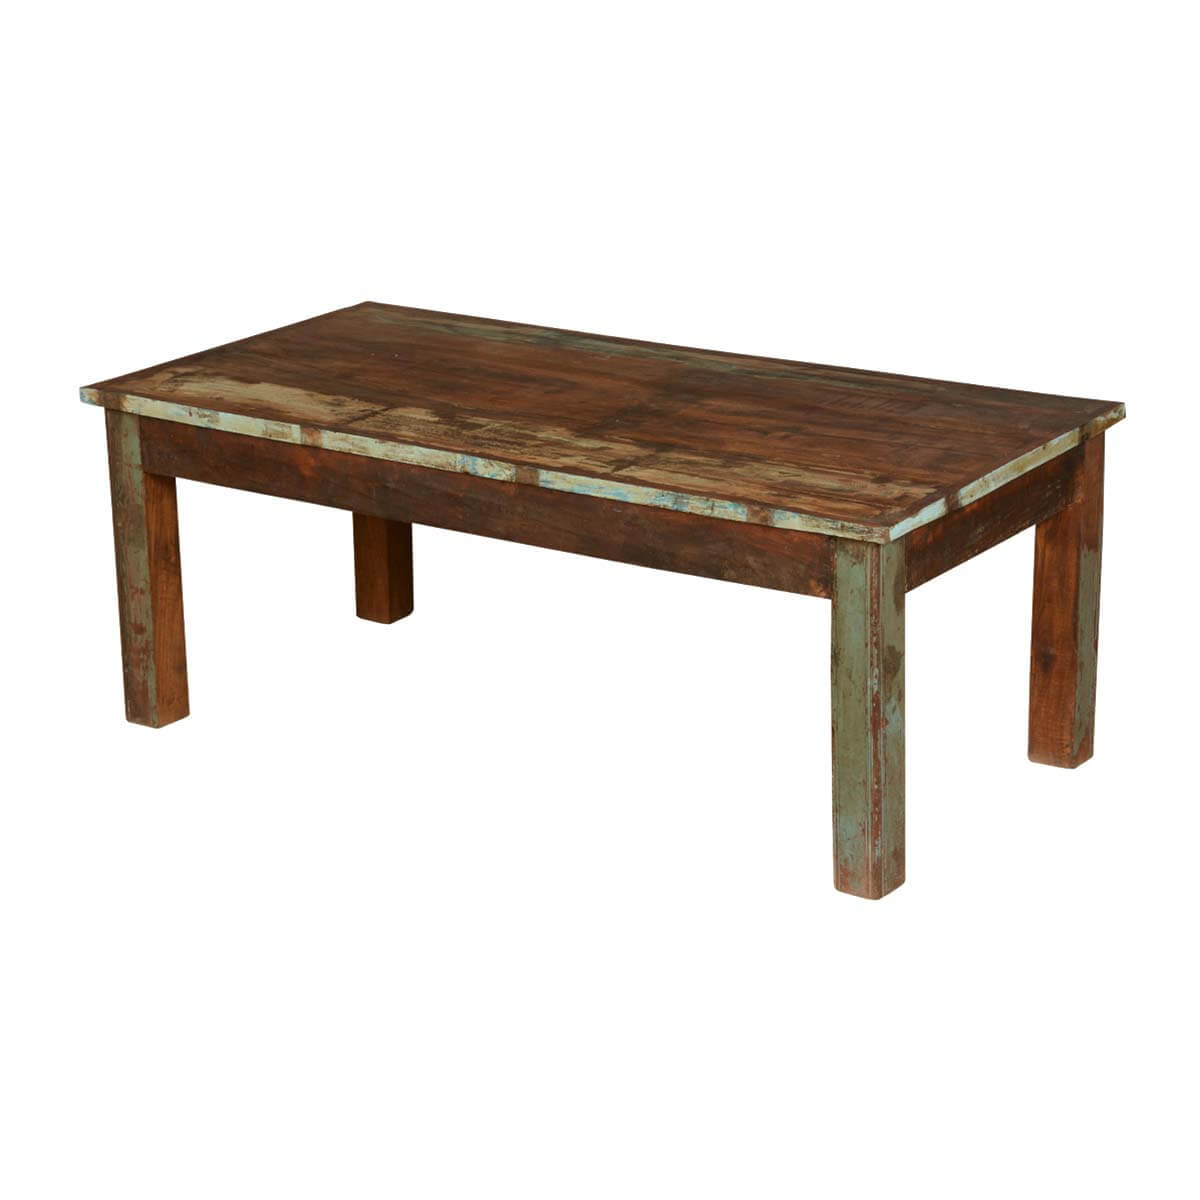 Distressed Farmhouse Living Room: Farmhouse Distressed Reclaimed Wood Rustic Coffee Table